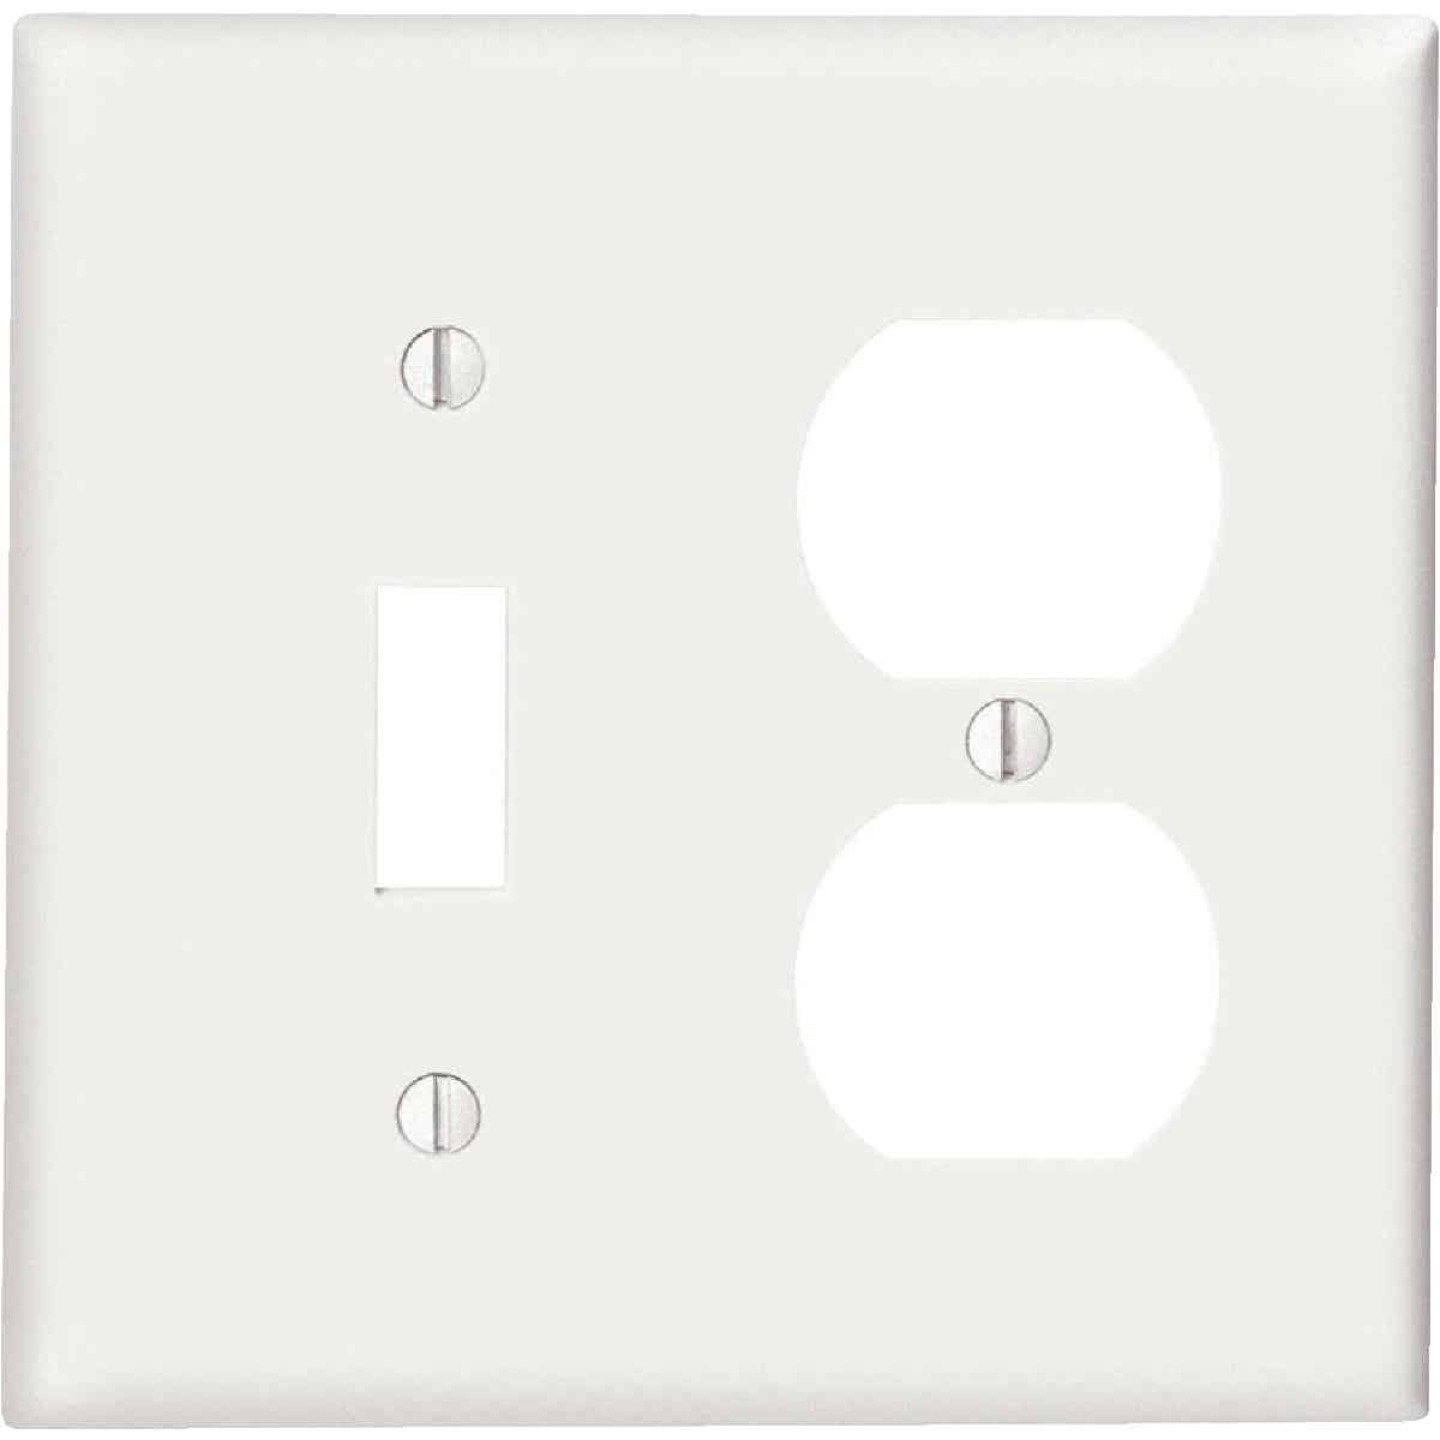 Leviton Commercial Grade 2-Gang Thermoplastic Single Toggle/Duplex Outlet Wall Plate, White Image 1